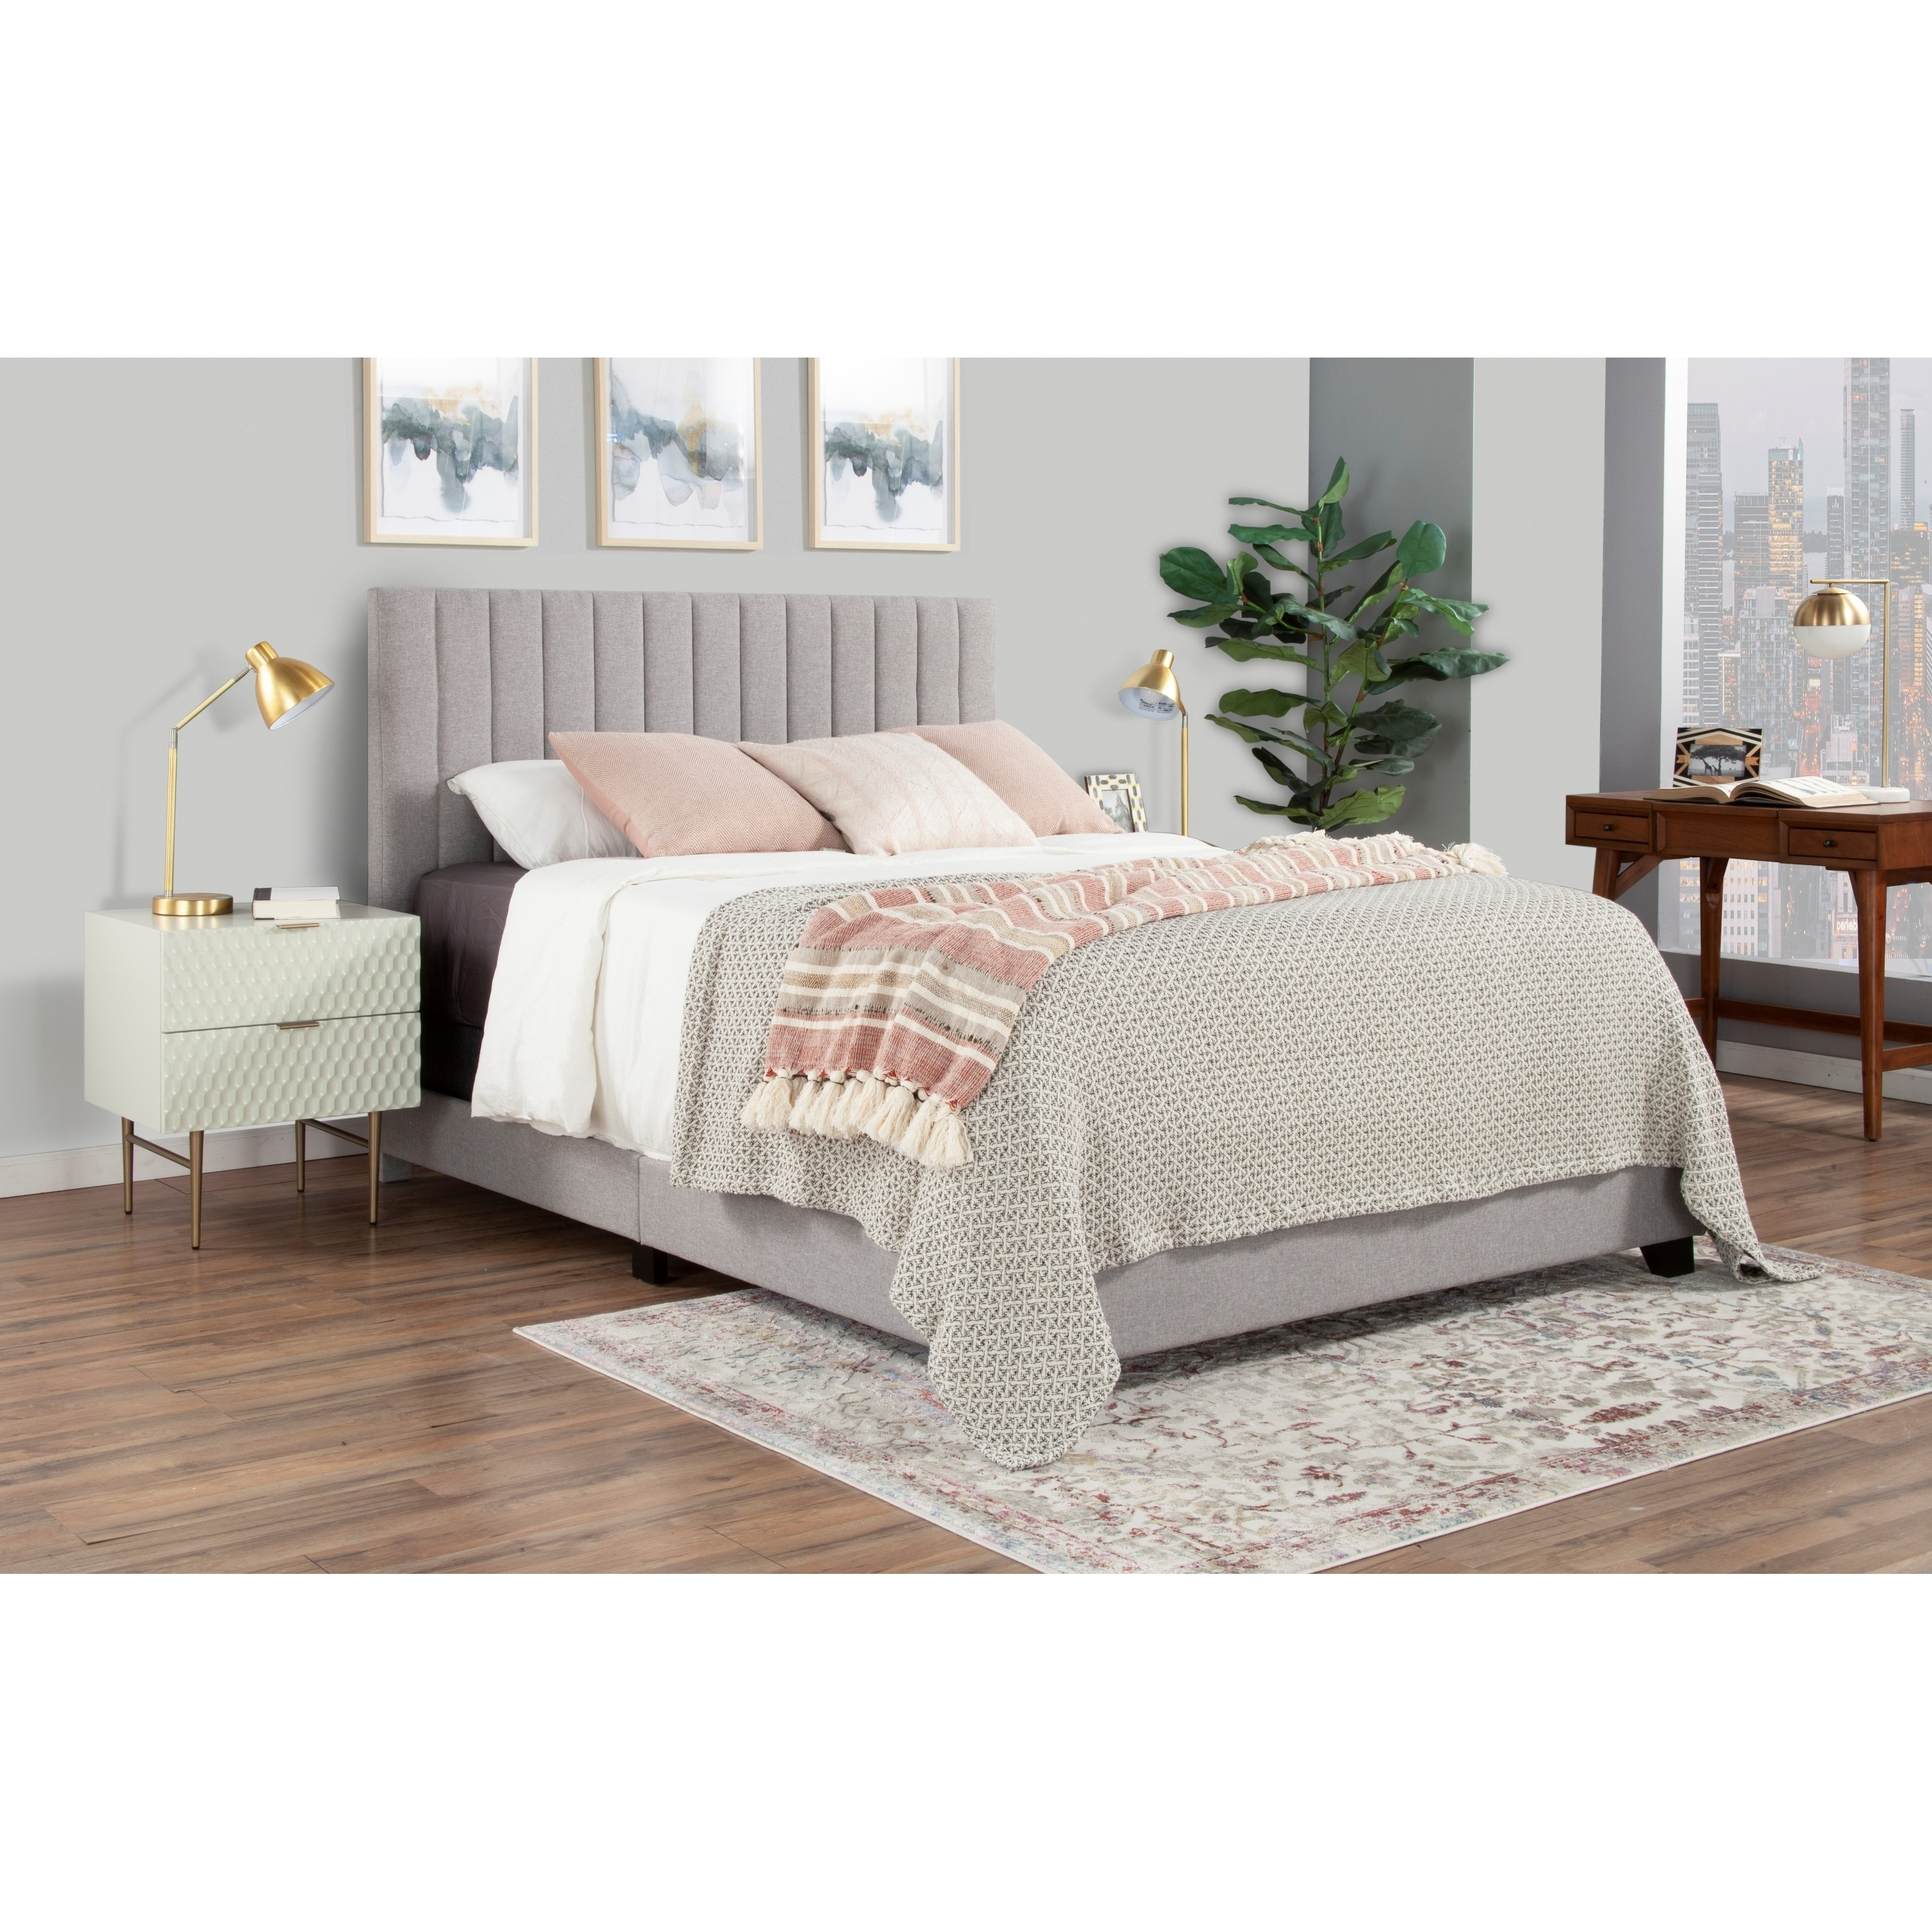 Copper Grove Chambeshi Channel Tufted Bed Overstock 30391807